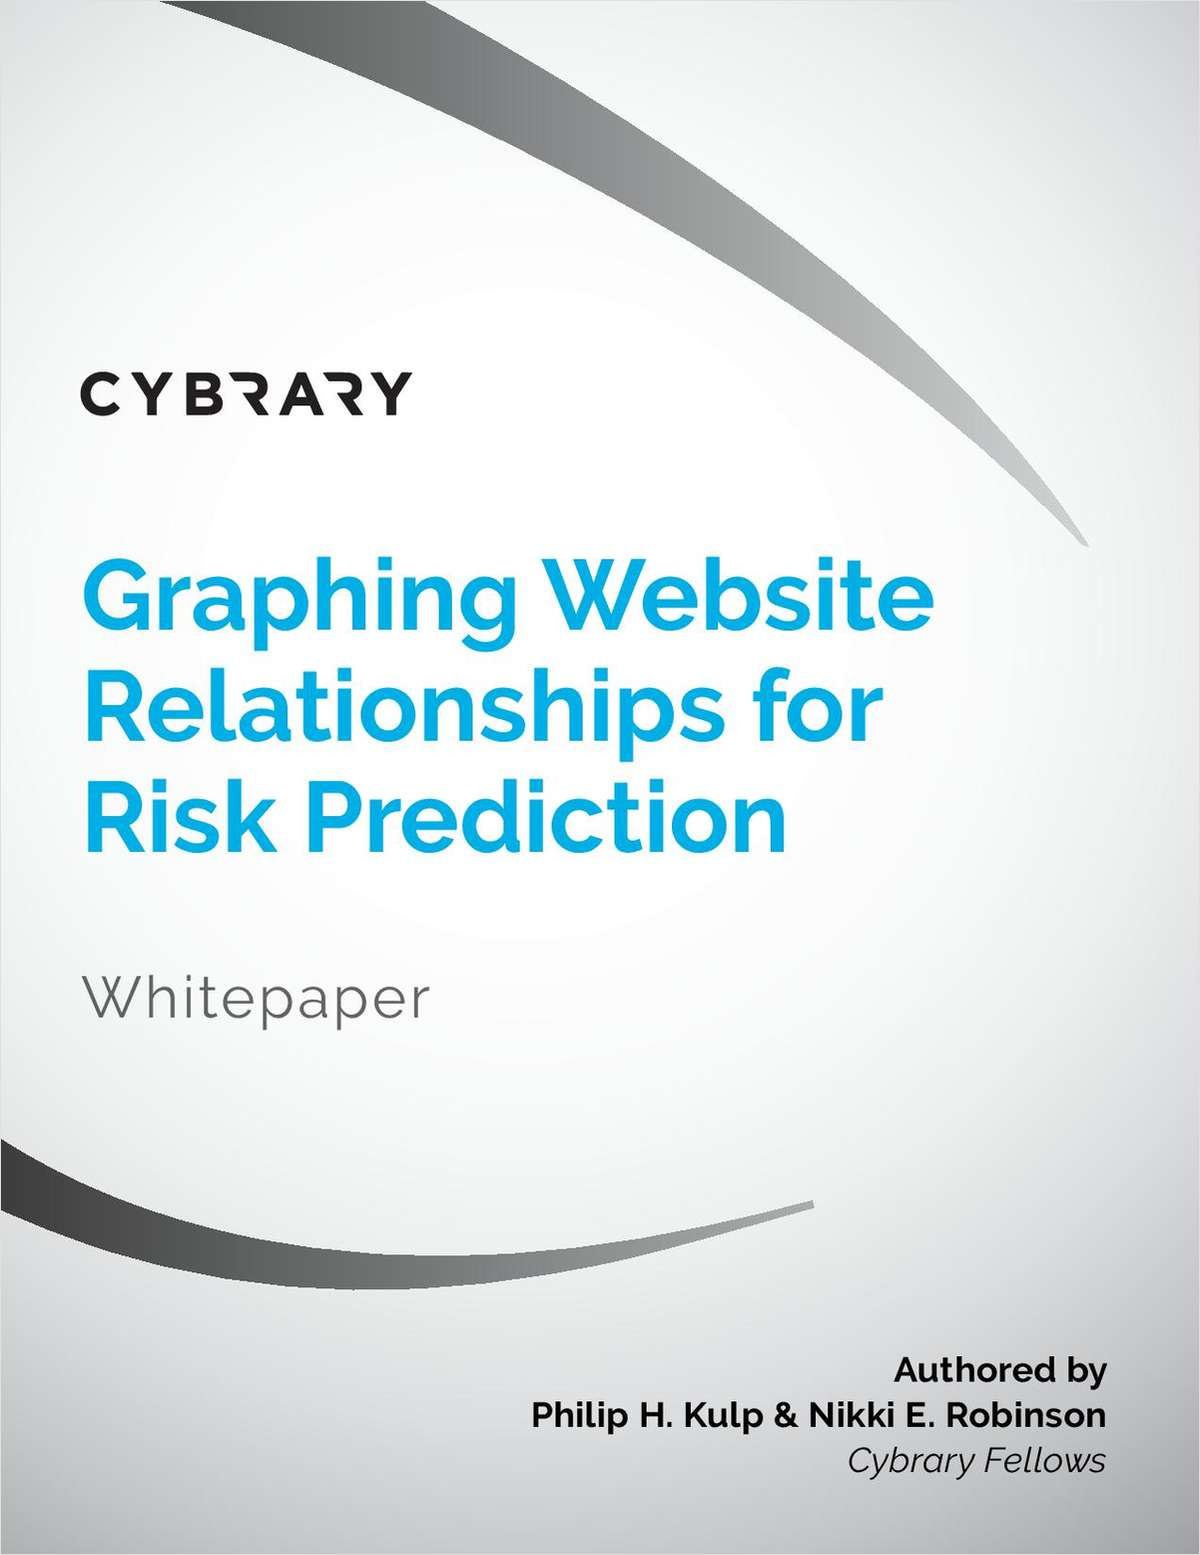 Graphing Website Relationships for Risk Prediction: Identifying Derived Threats to Users Based on Known Indicators